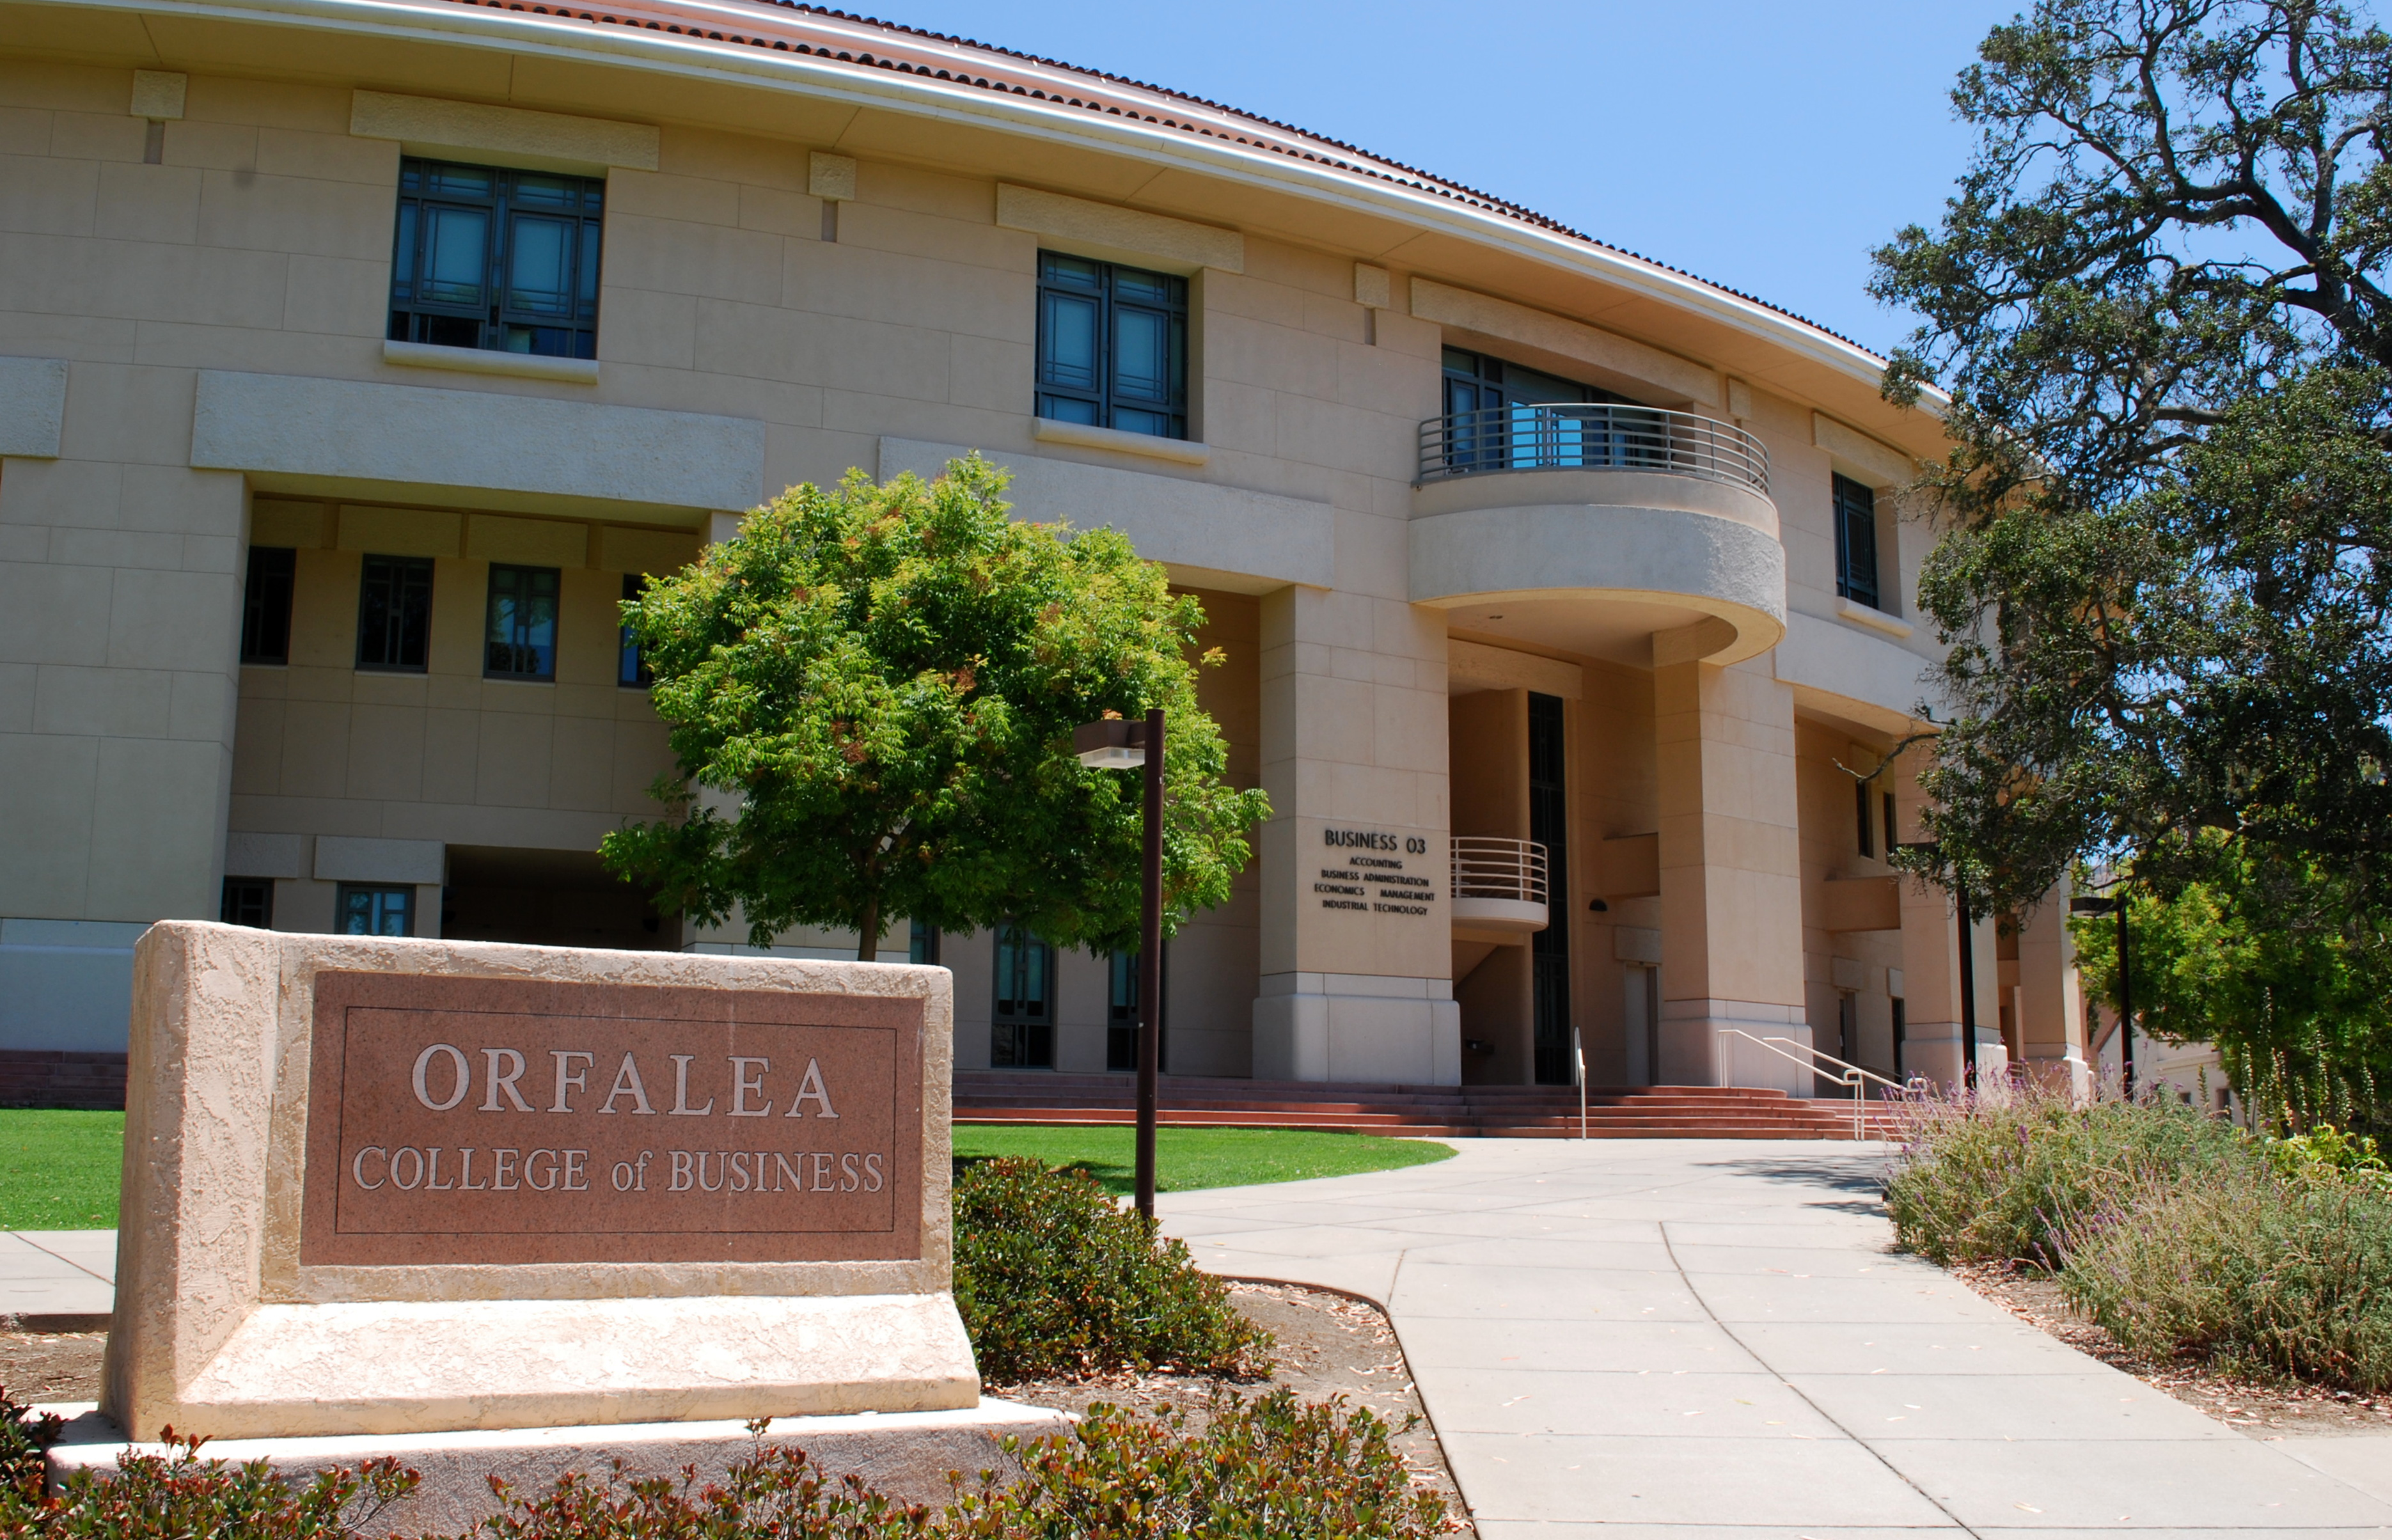 Orfalea College of Business - Wikiwand